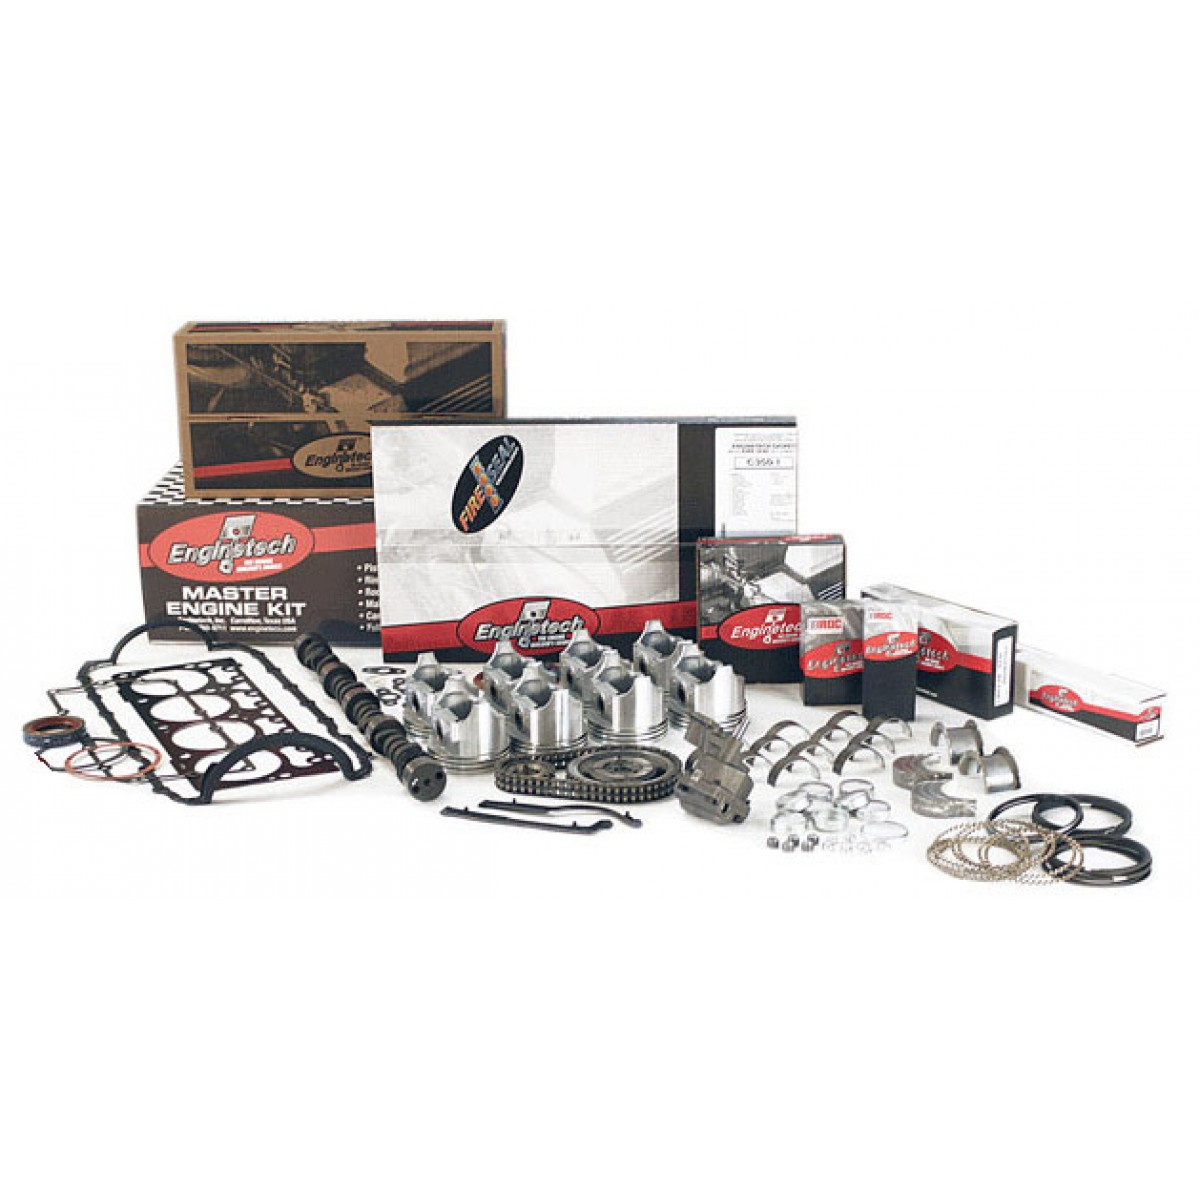 Ford 2 3 Engine Rebuild: Ford 429 Master Rebuild Kit